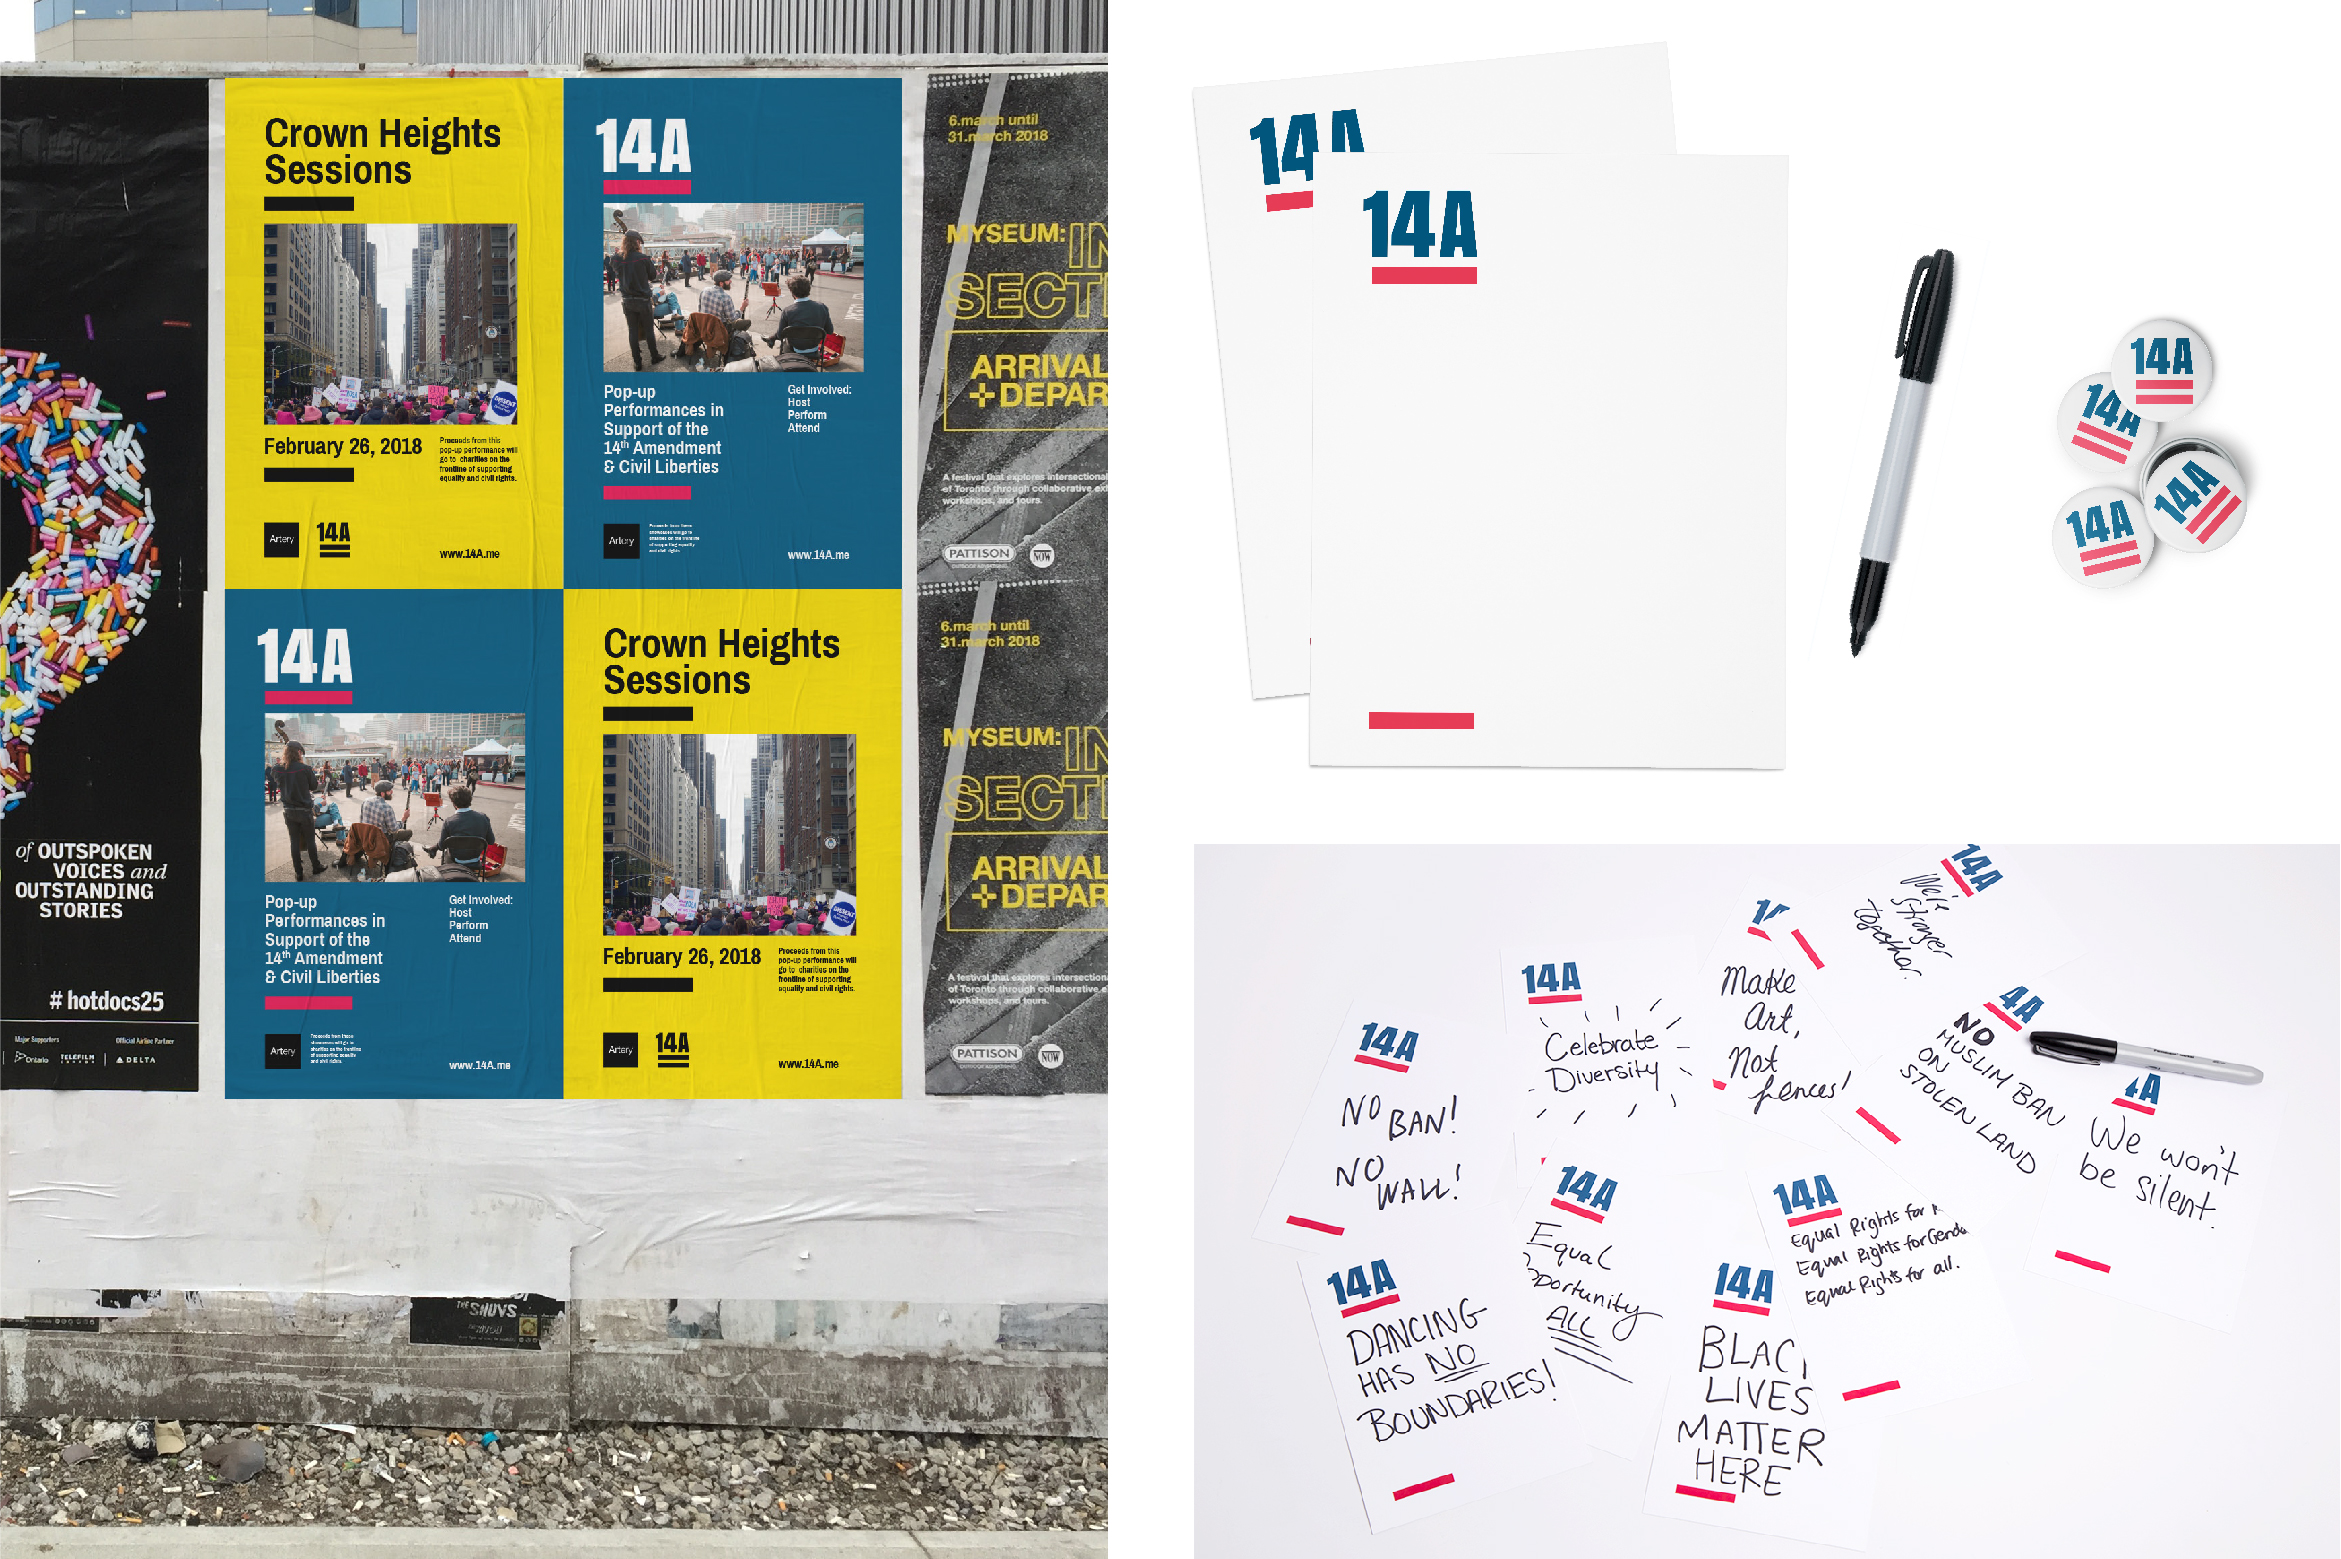 Set of various applications for the 14A campaign including pins, posters on hoarding, and flyers.